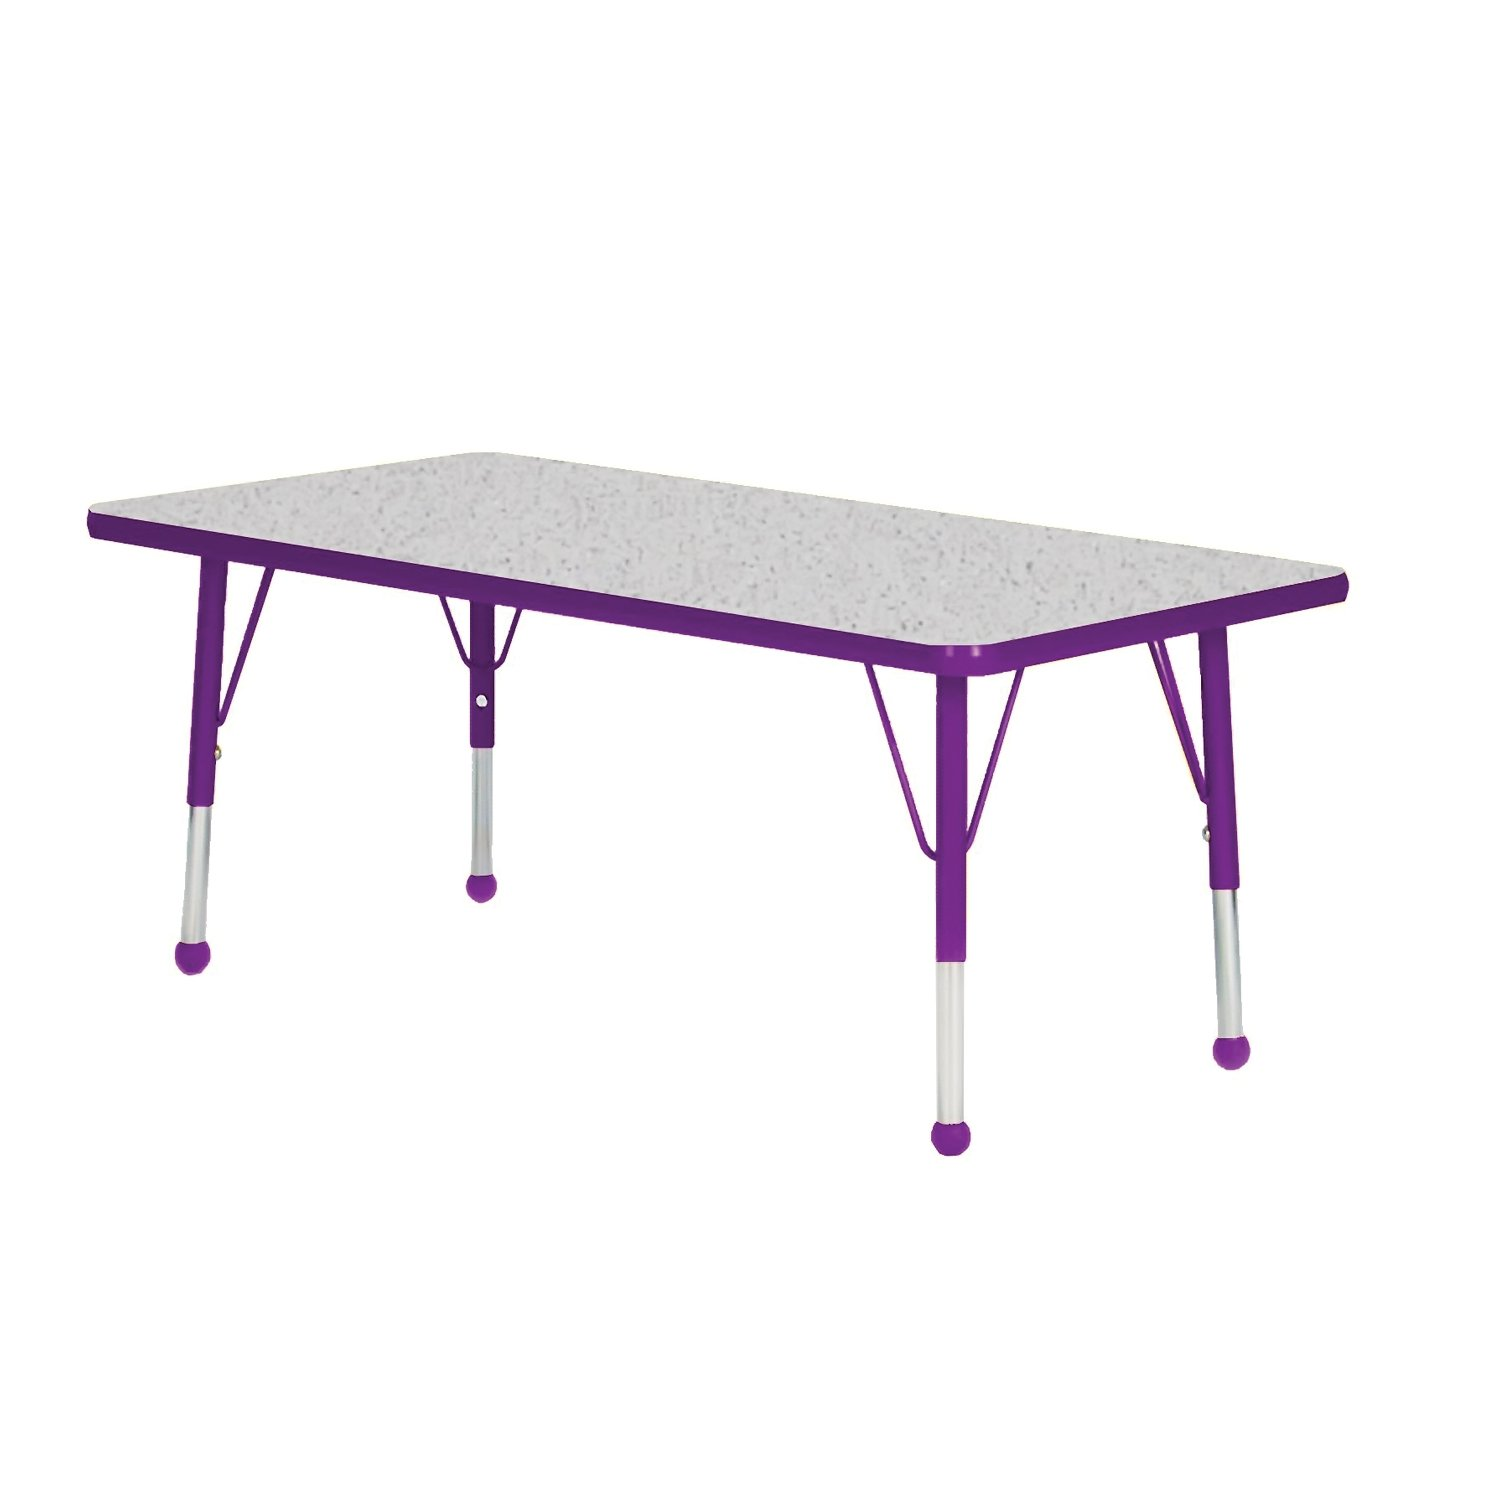 48'' x 30'' Rectangular Classroom Table Side Finish: Purple, Table Size: Standard 21''-30'' Self-leveling nickel glide, Top Color: Gray Nebula